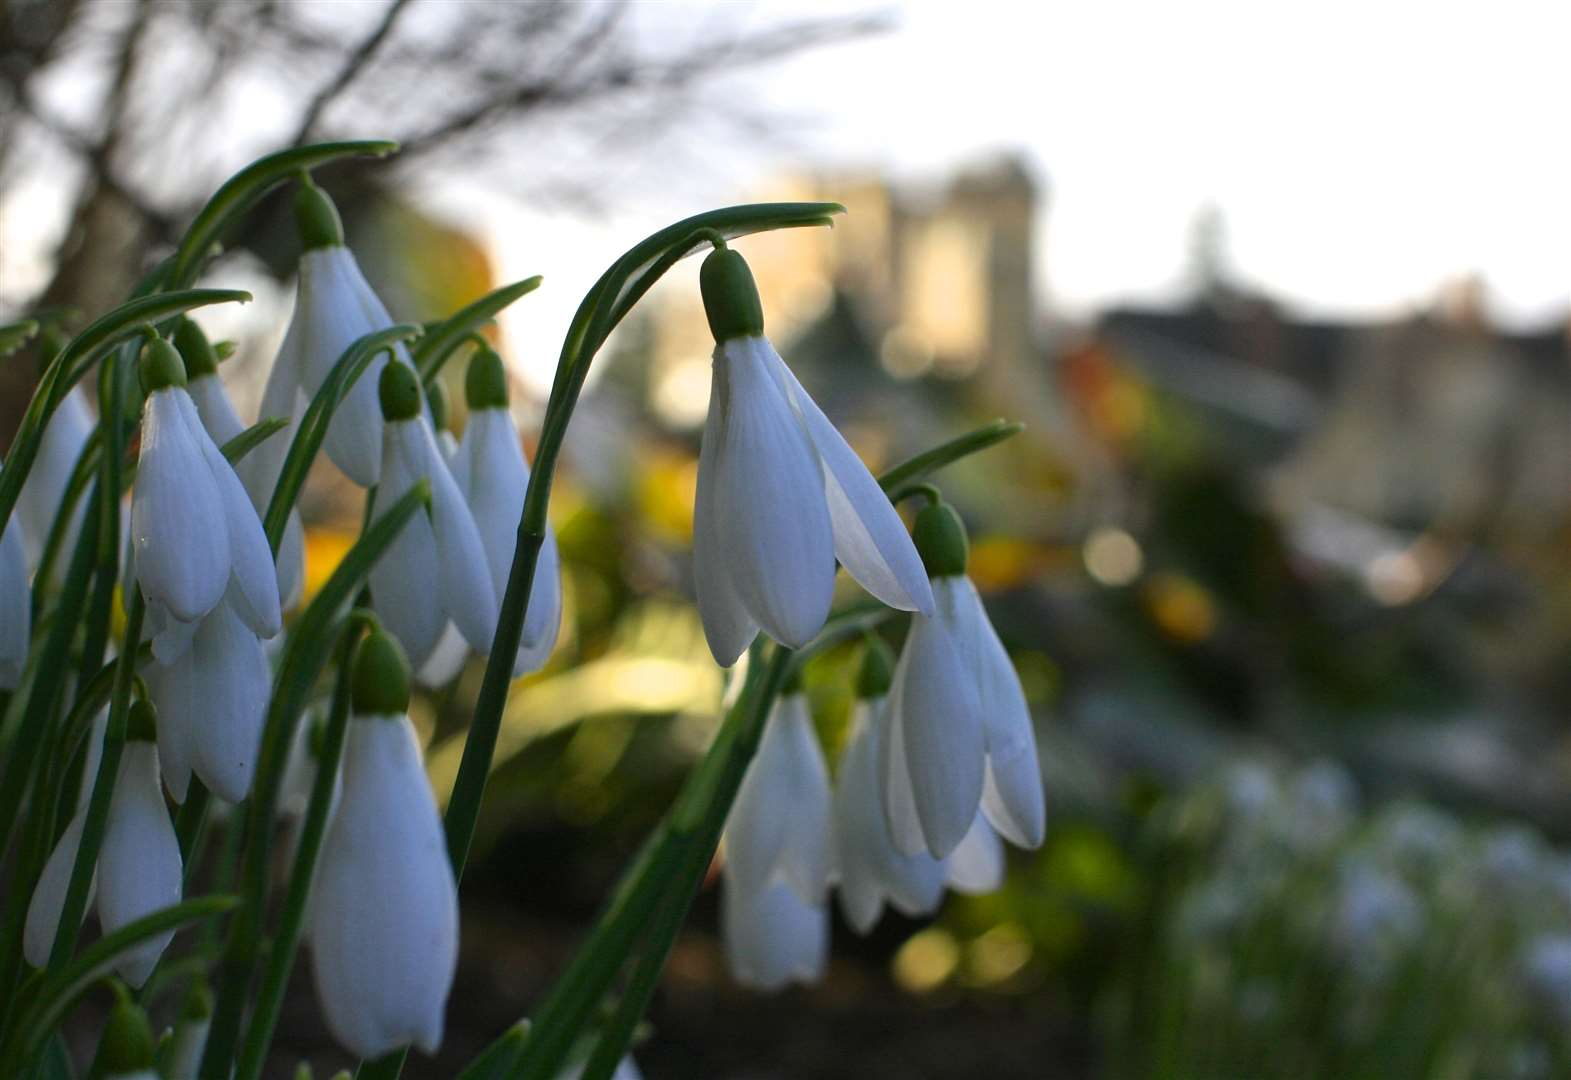 Snowdrops will be dropping in